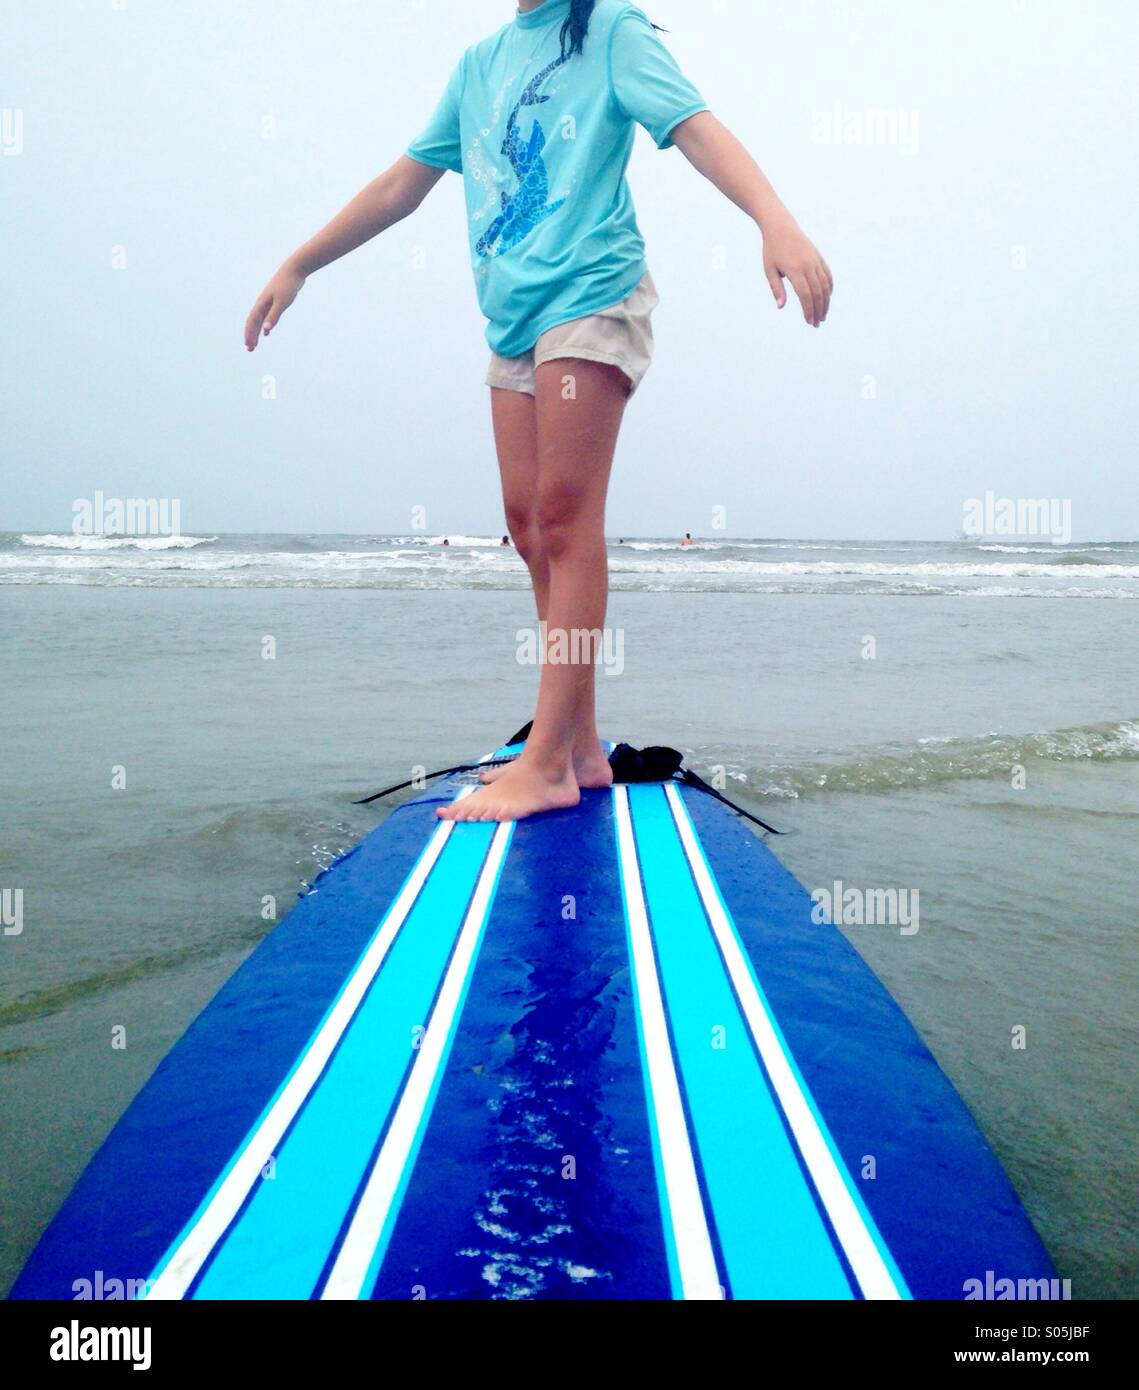 A child wearing an aqua bathing suit stands on a striped surfboard on the beach. - Stock Image